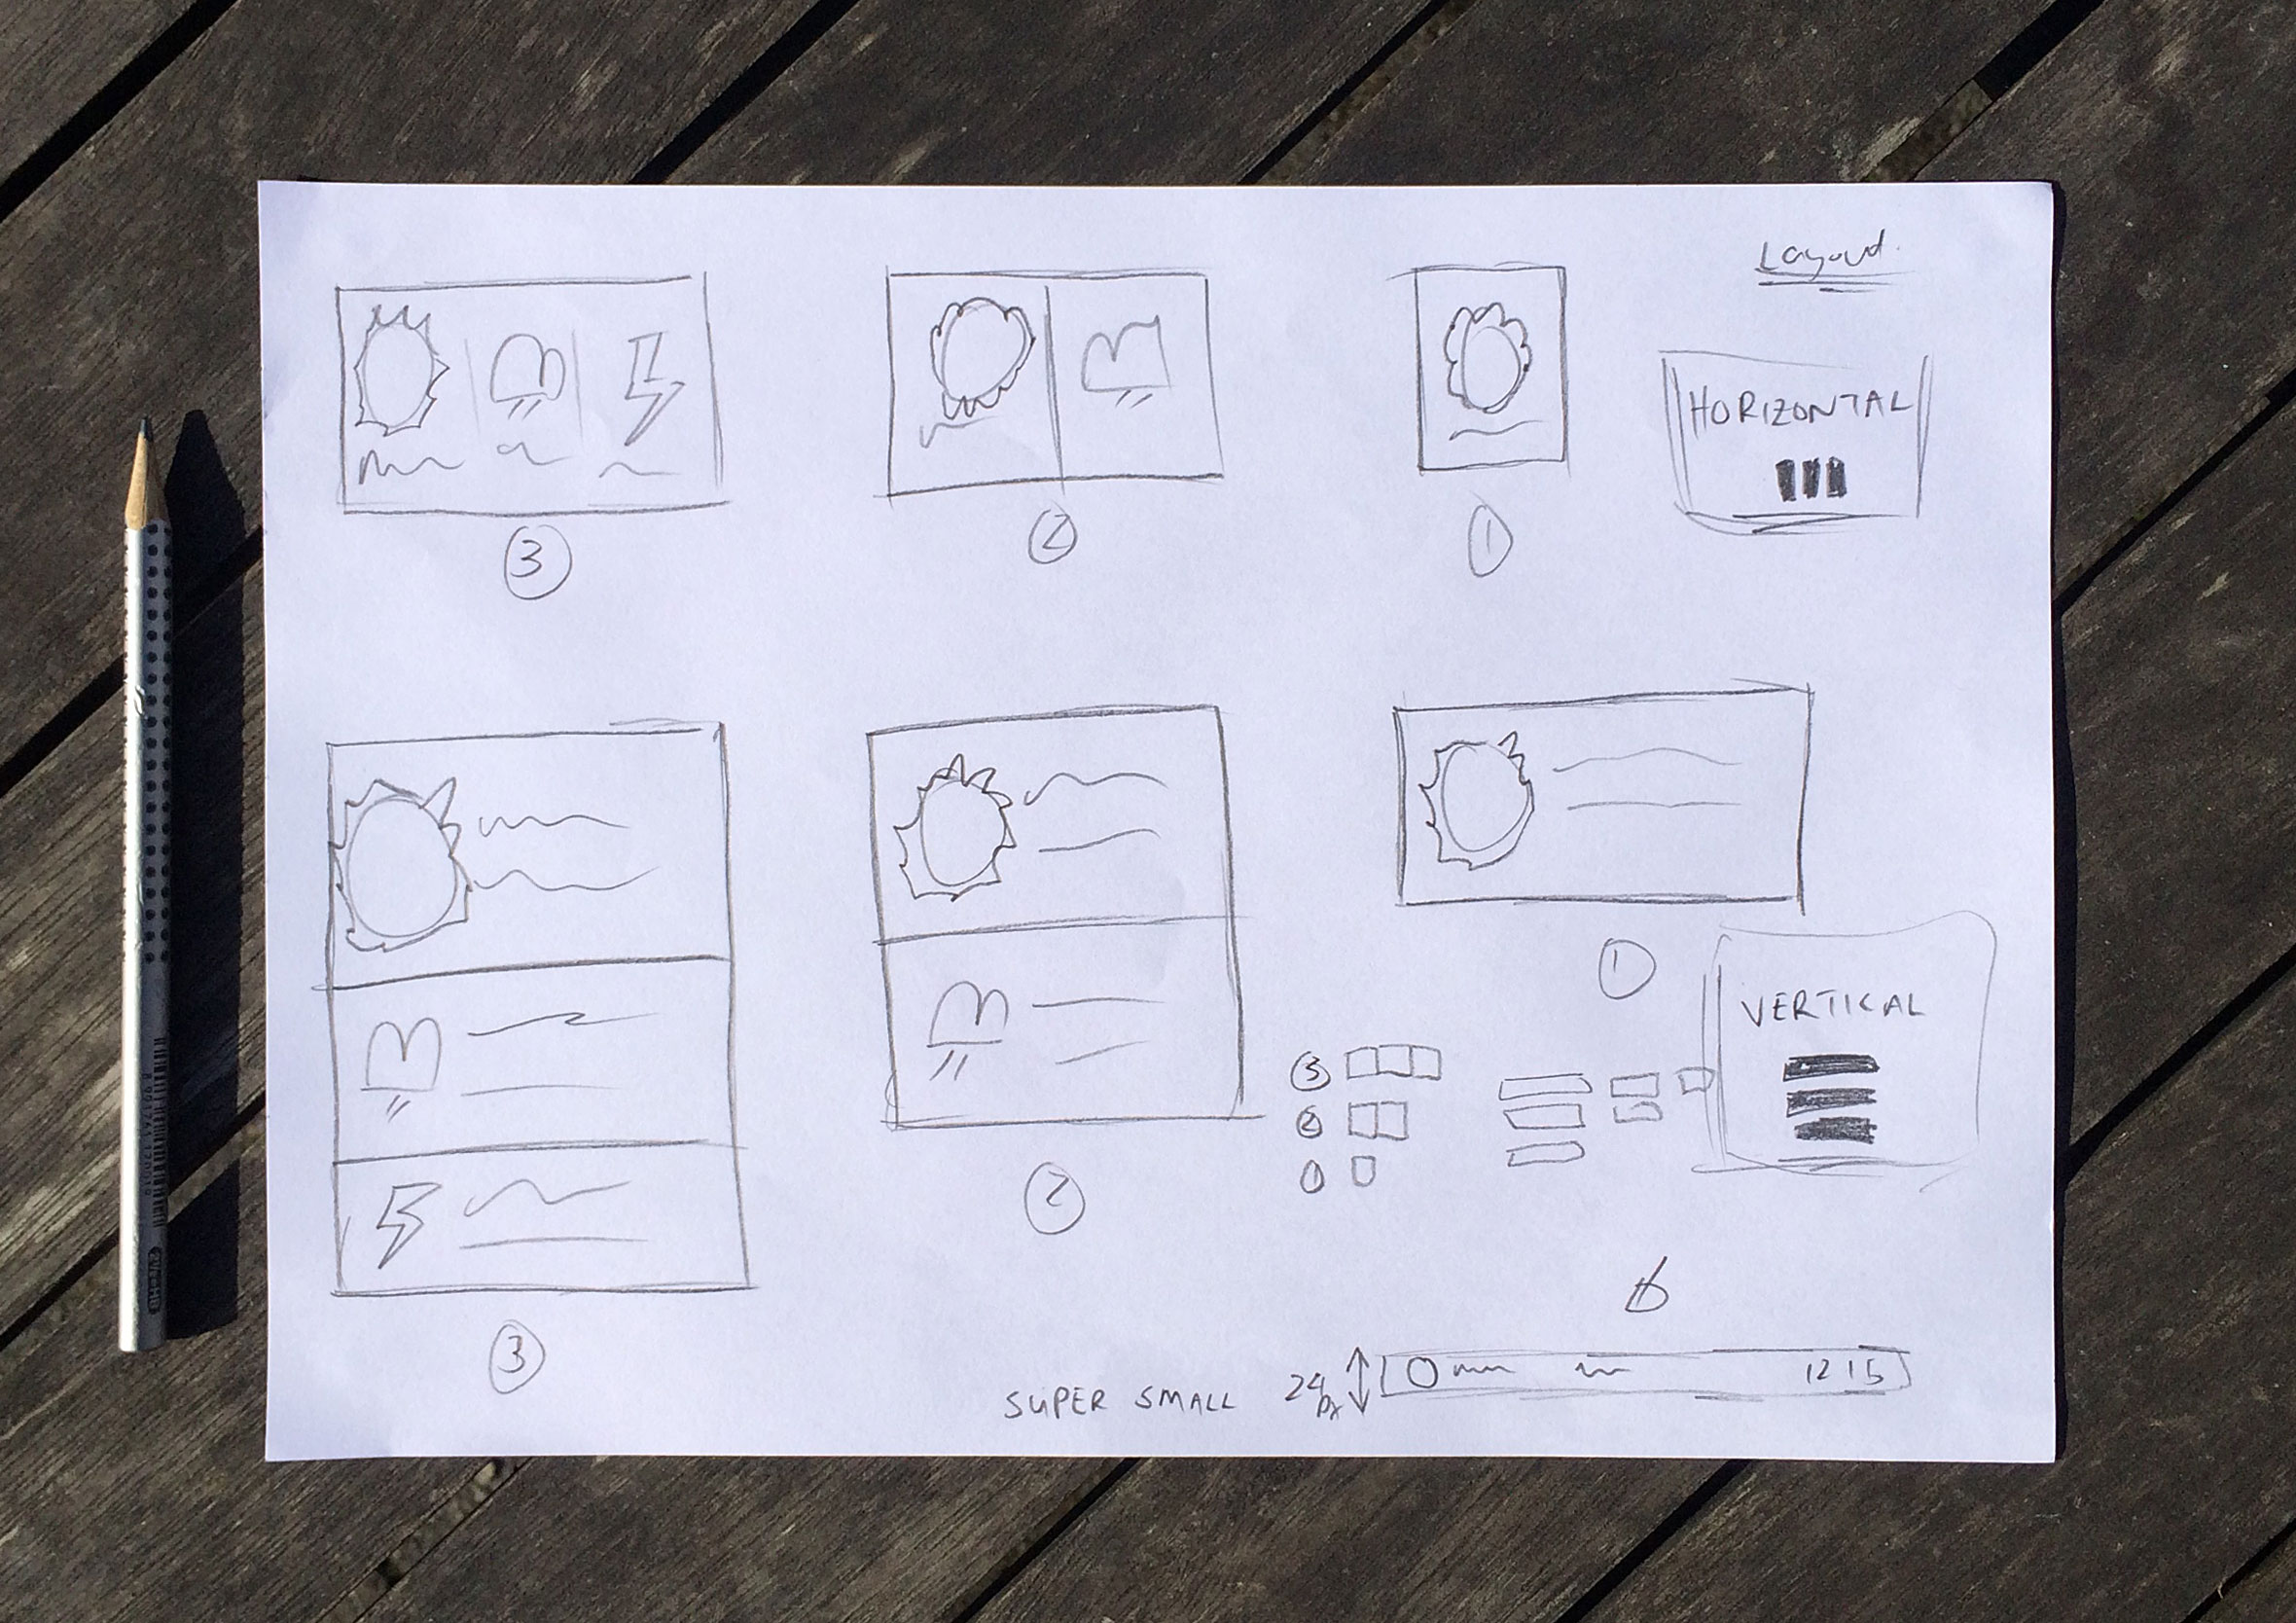 weather-ondemand-sketches-layout